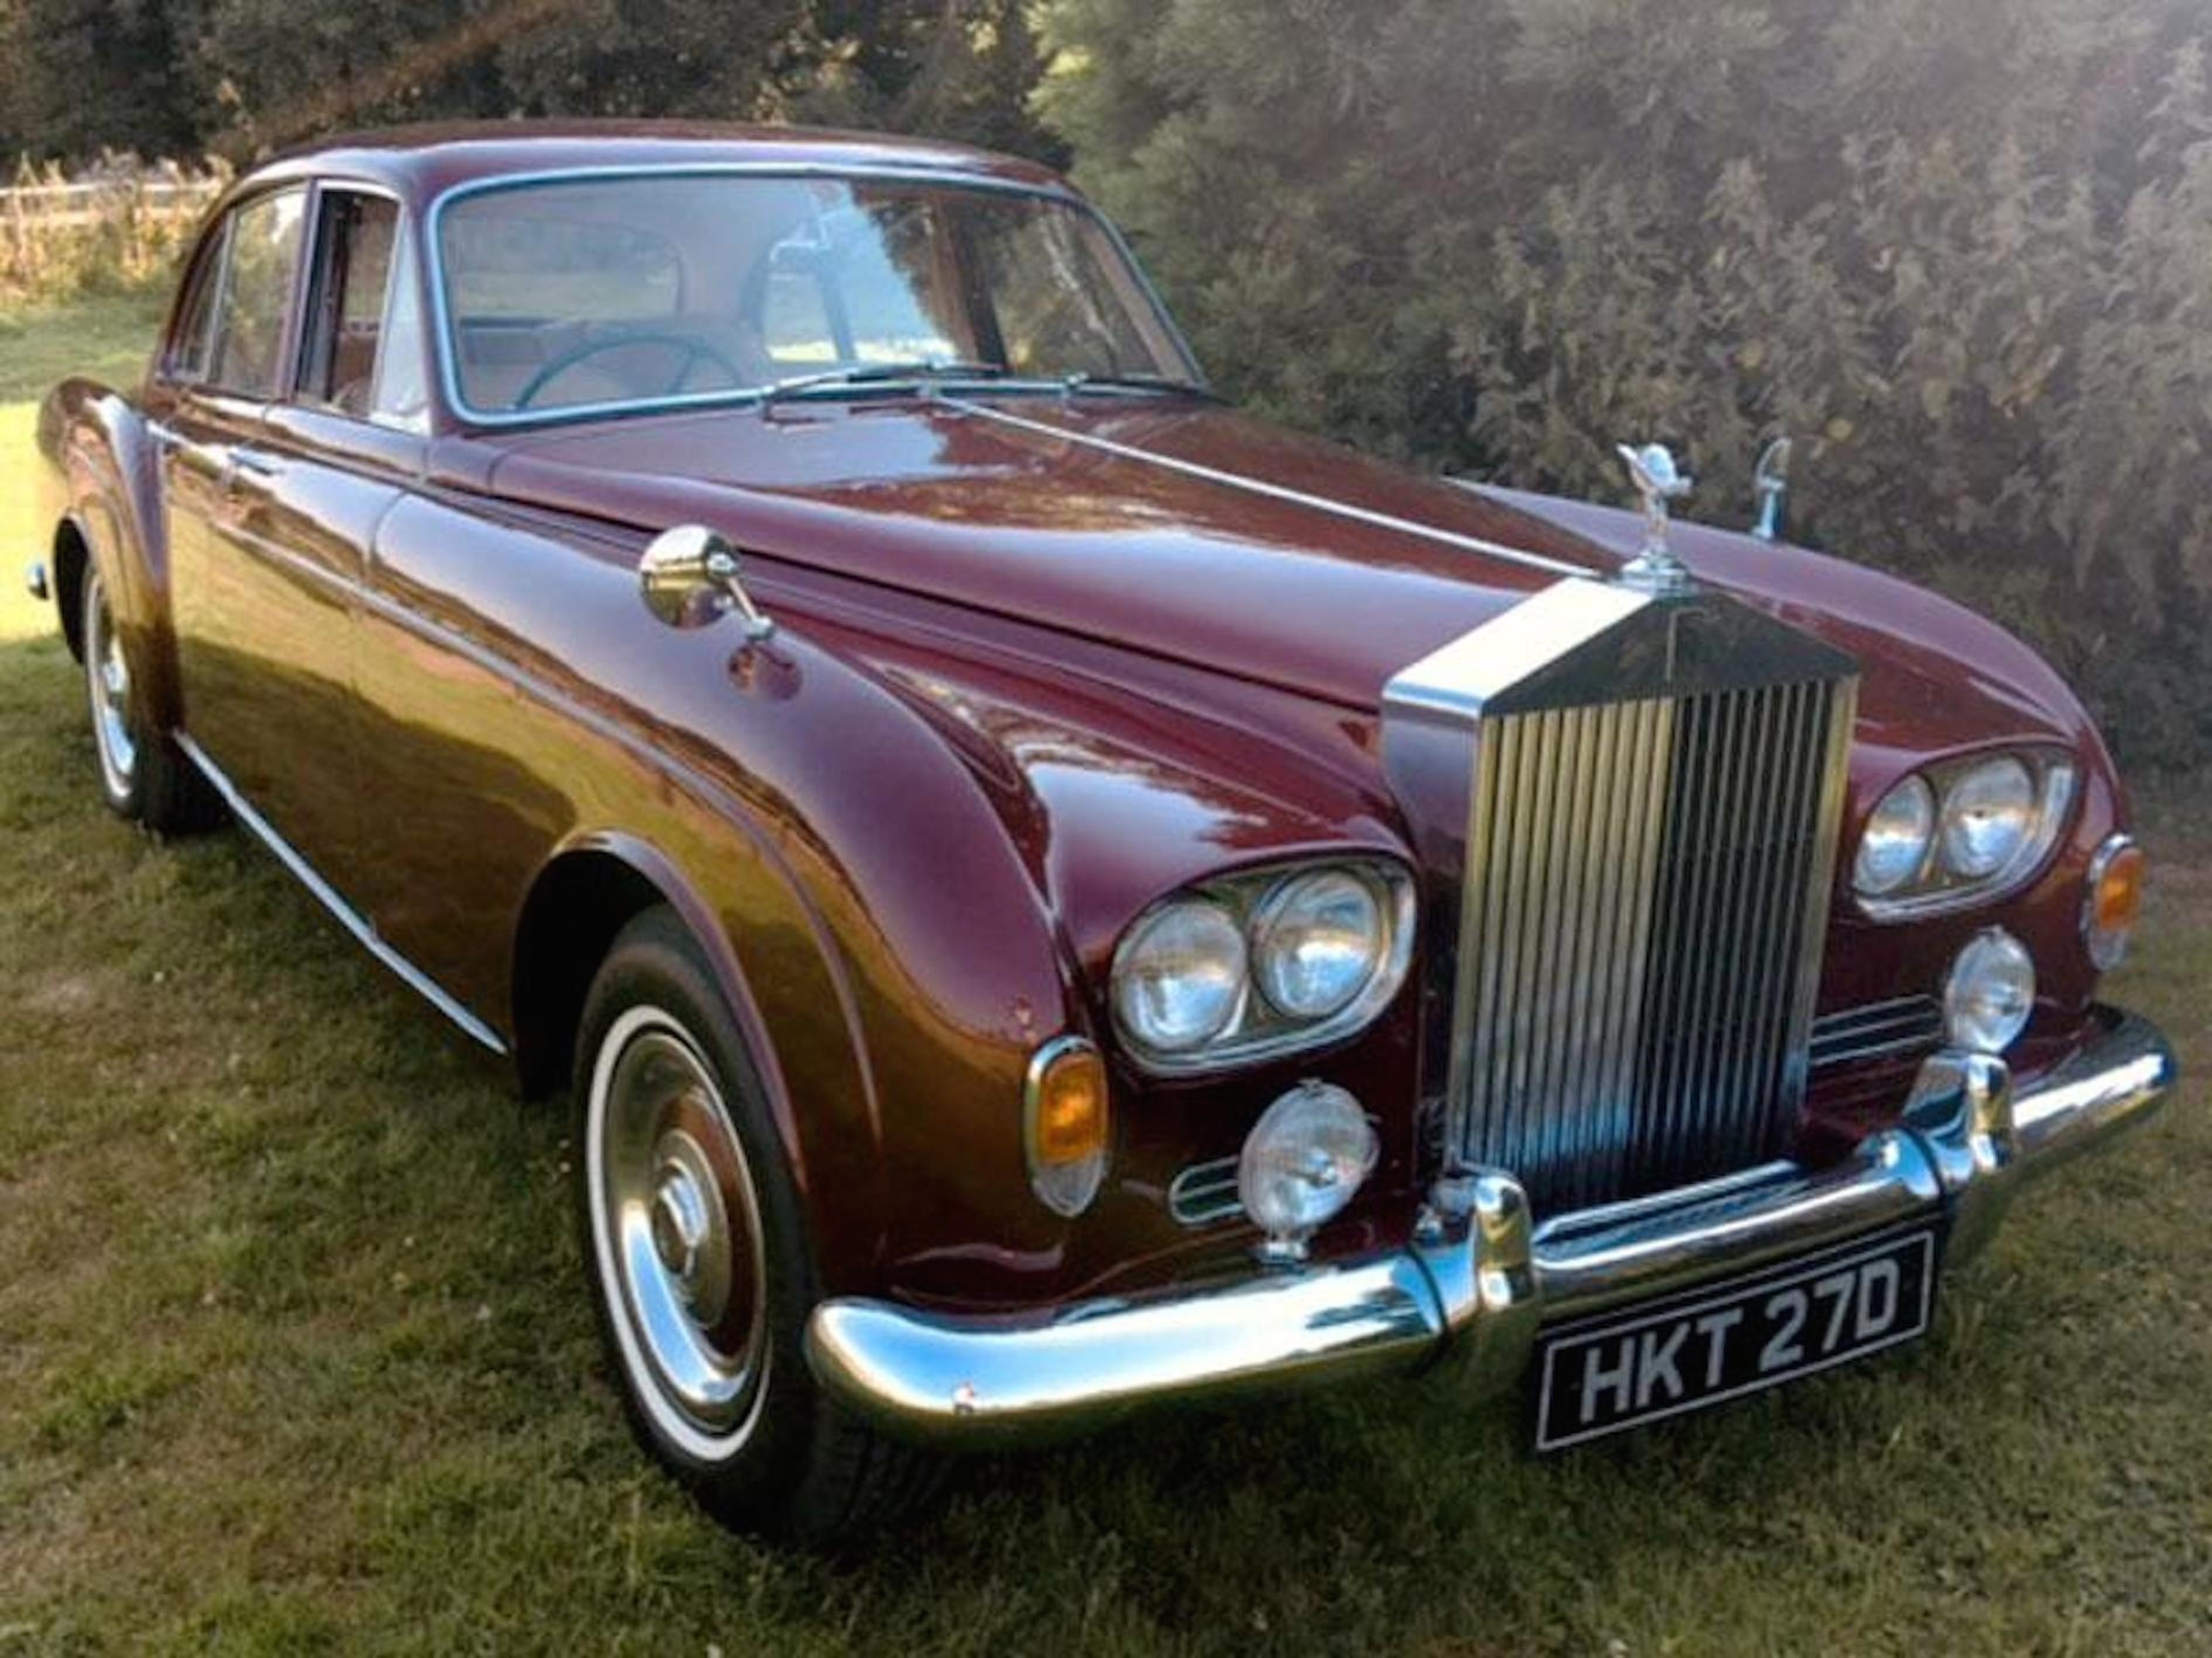 Roger Daltrey, Two classic cars owned by Who frontman Roger Daltrey heading to auction, ClassicCars.com Journal